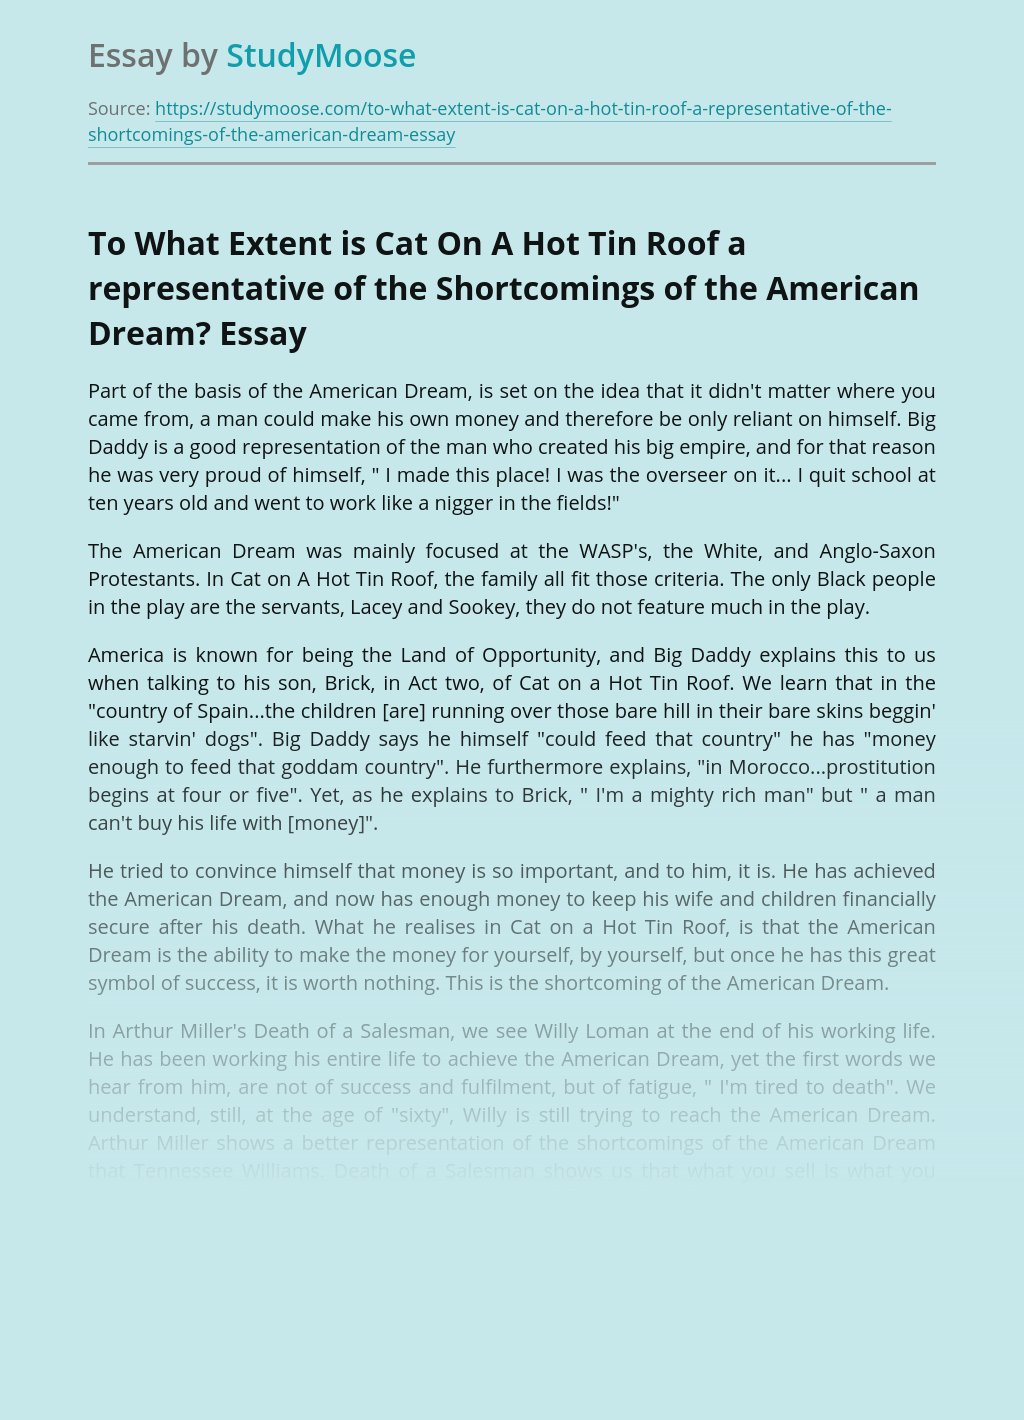 To What Extent is Cat On A Hot Tin Roof a representative of the Shortcomings of the American Dream?